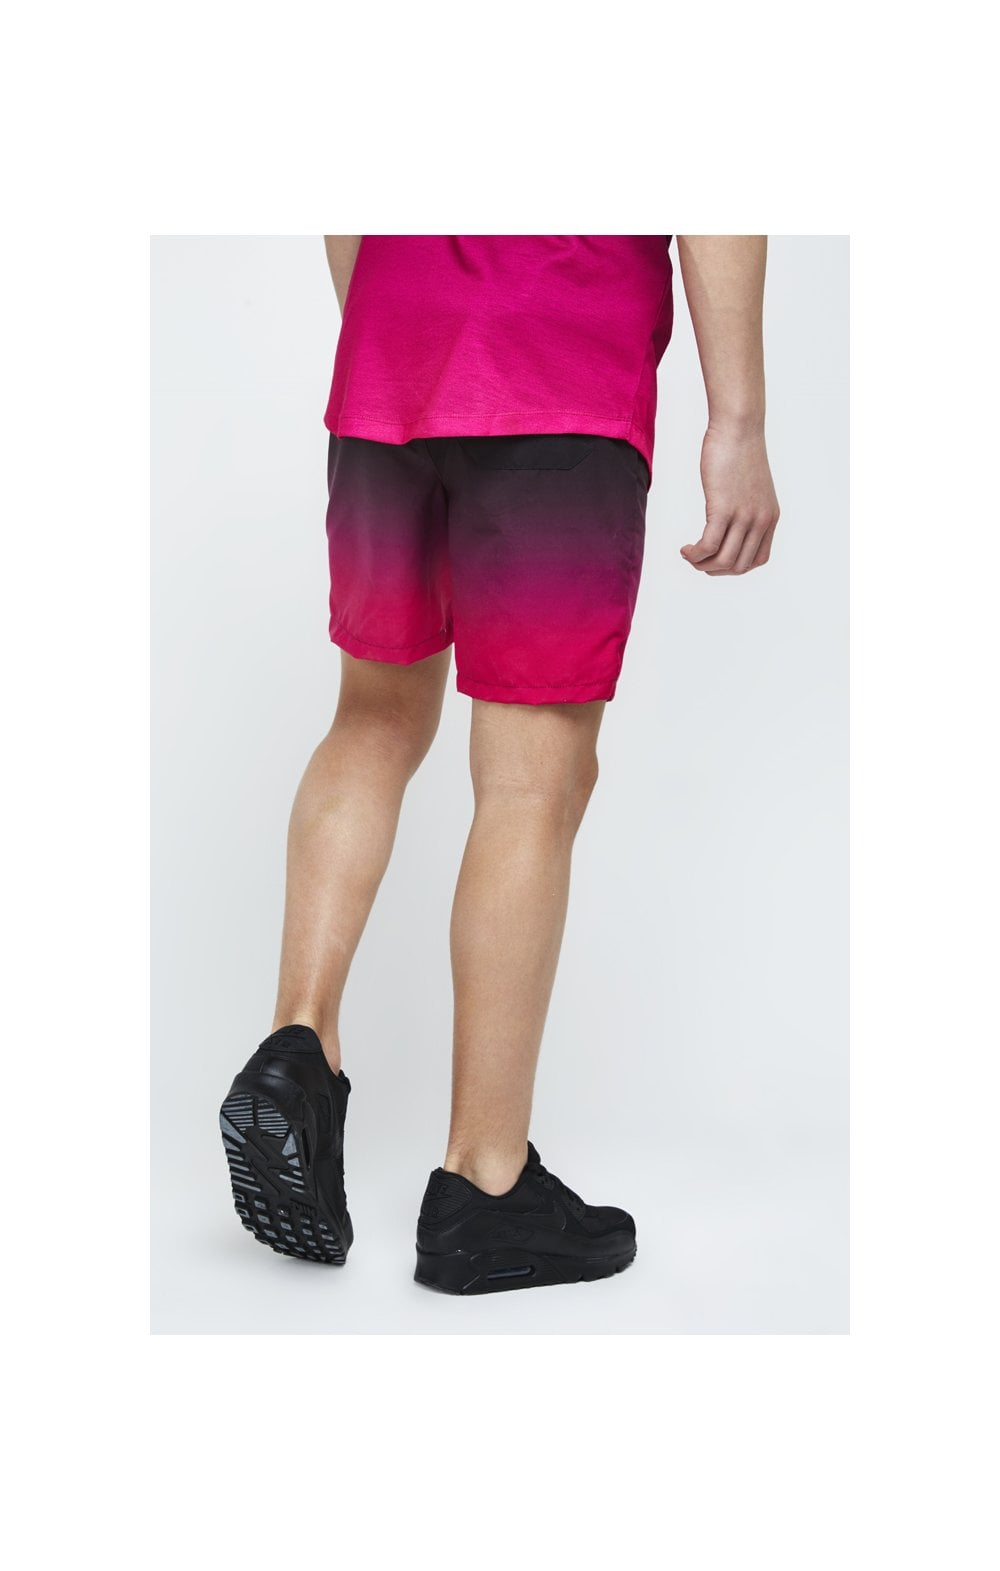 Illusive London Swim Shorts - Black & Pink (2)